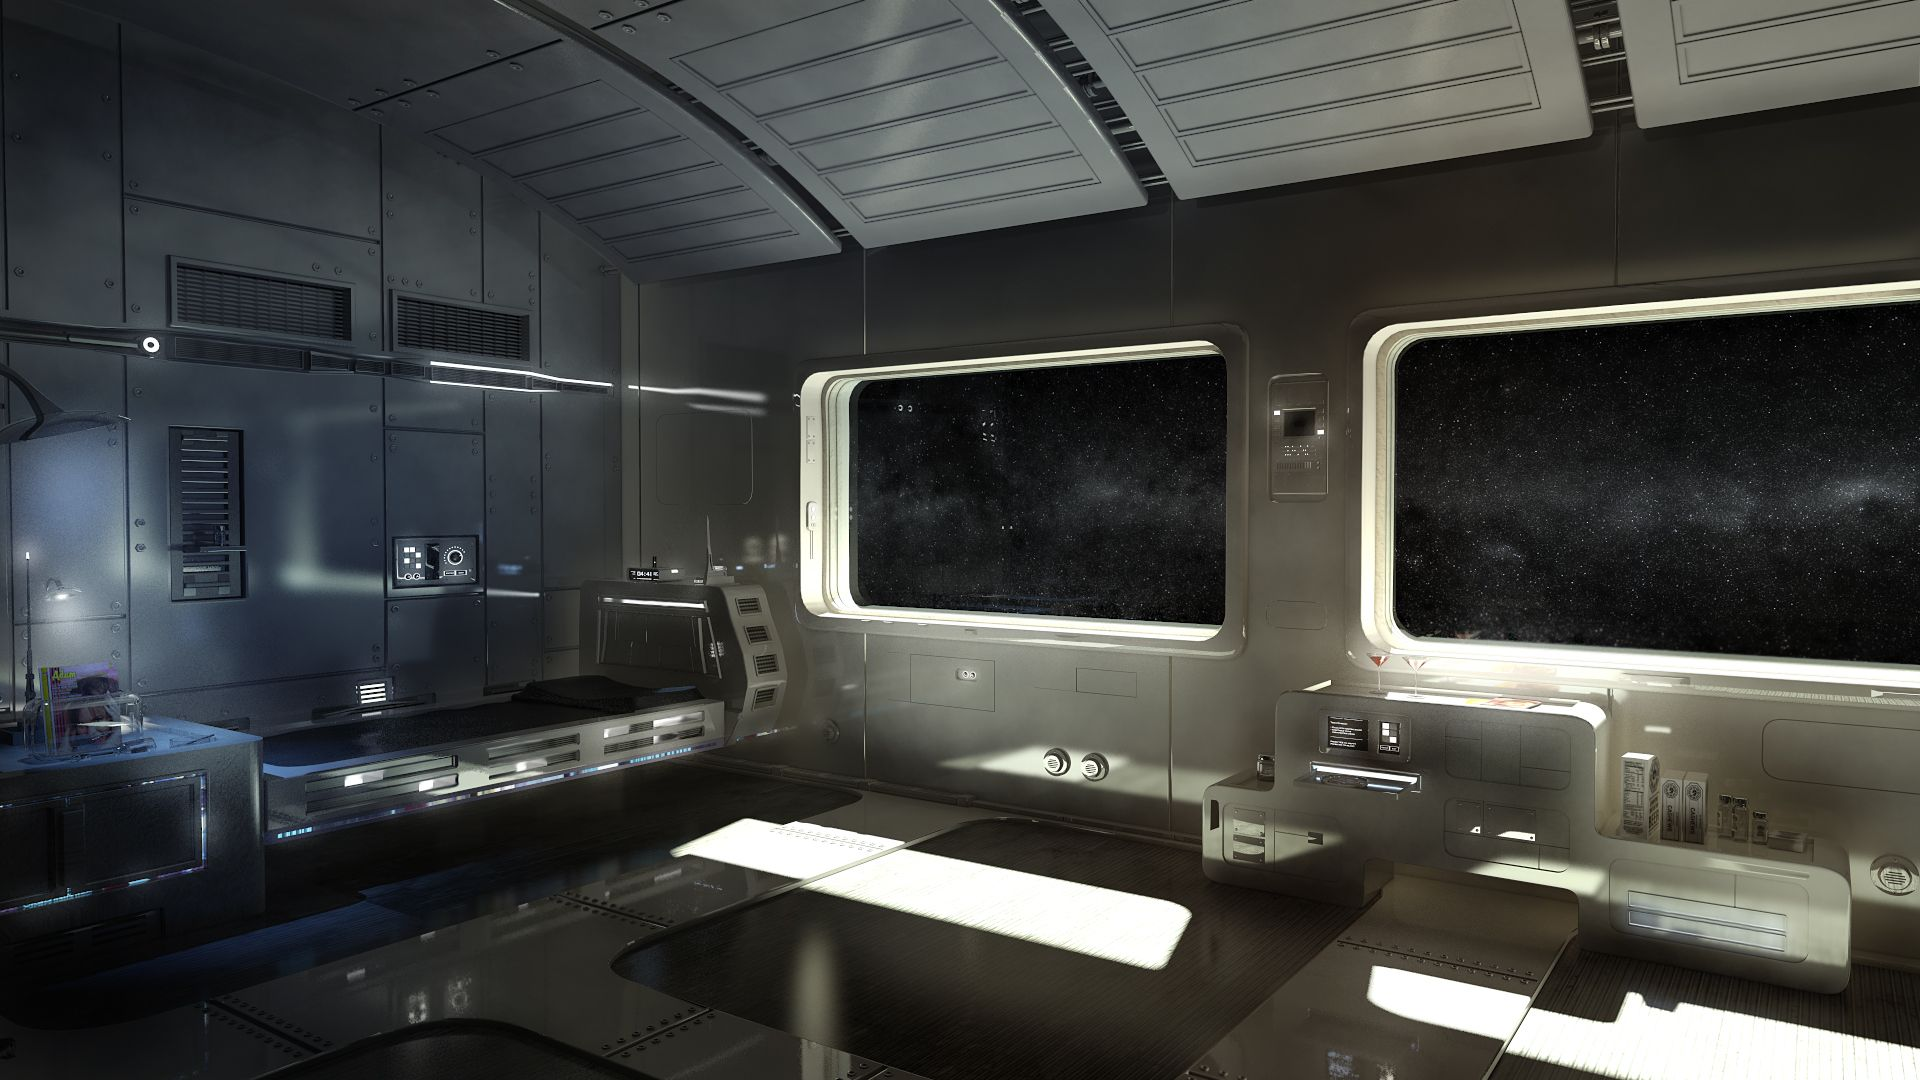 Black themed spaceship conceptual artwork and wallpapers 1 design - Spaceship Living Quarters Google Search Spaceships Interior Pinterest Spaceship Google Search And Google